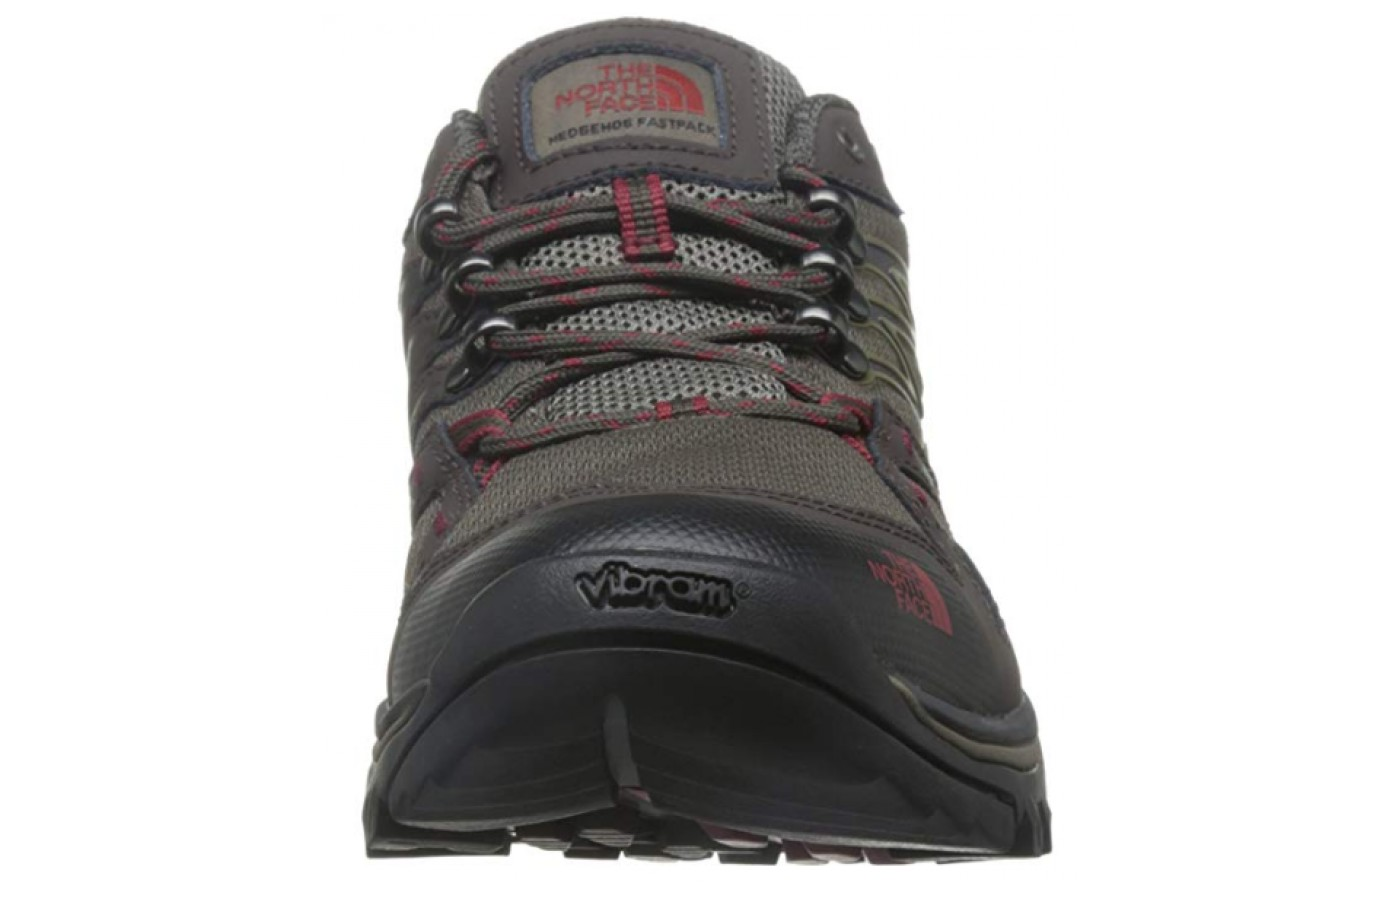 The sole of this shoe is built to protect and flex according to your needs.